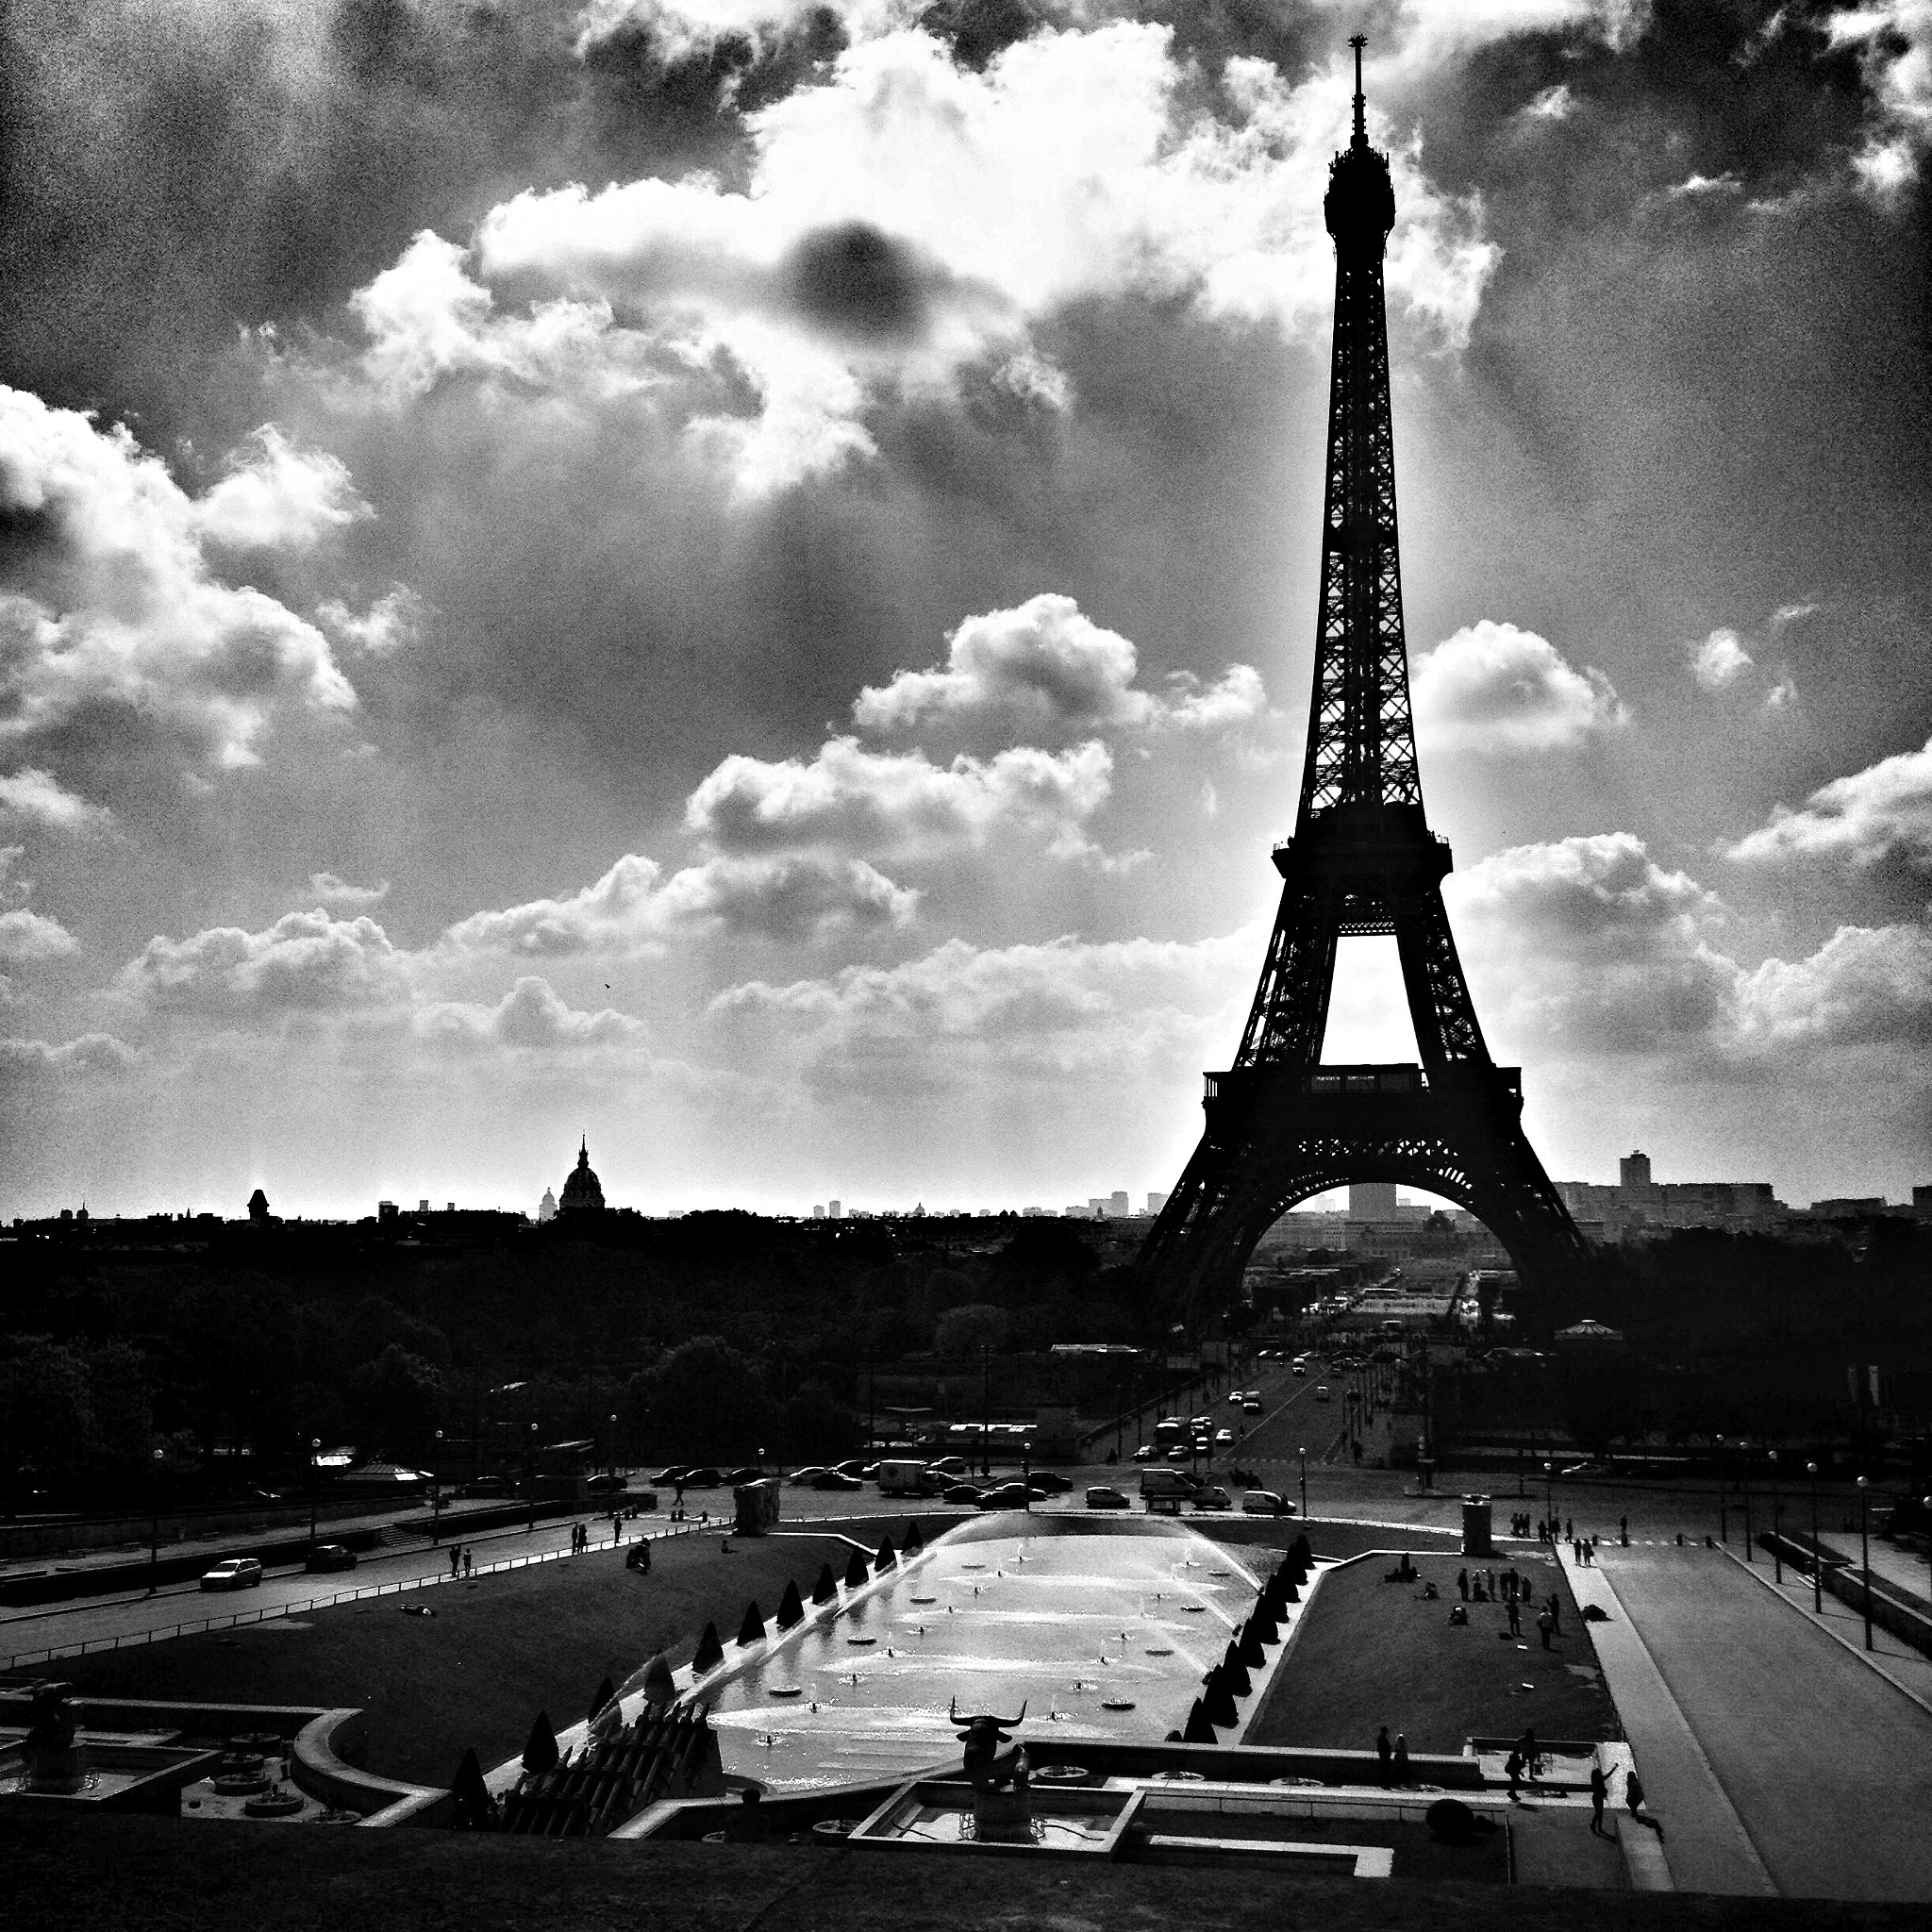 Paris Noir by nick.kenrick.9